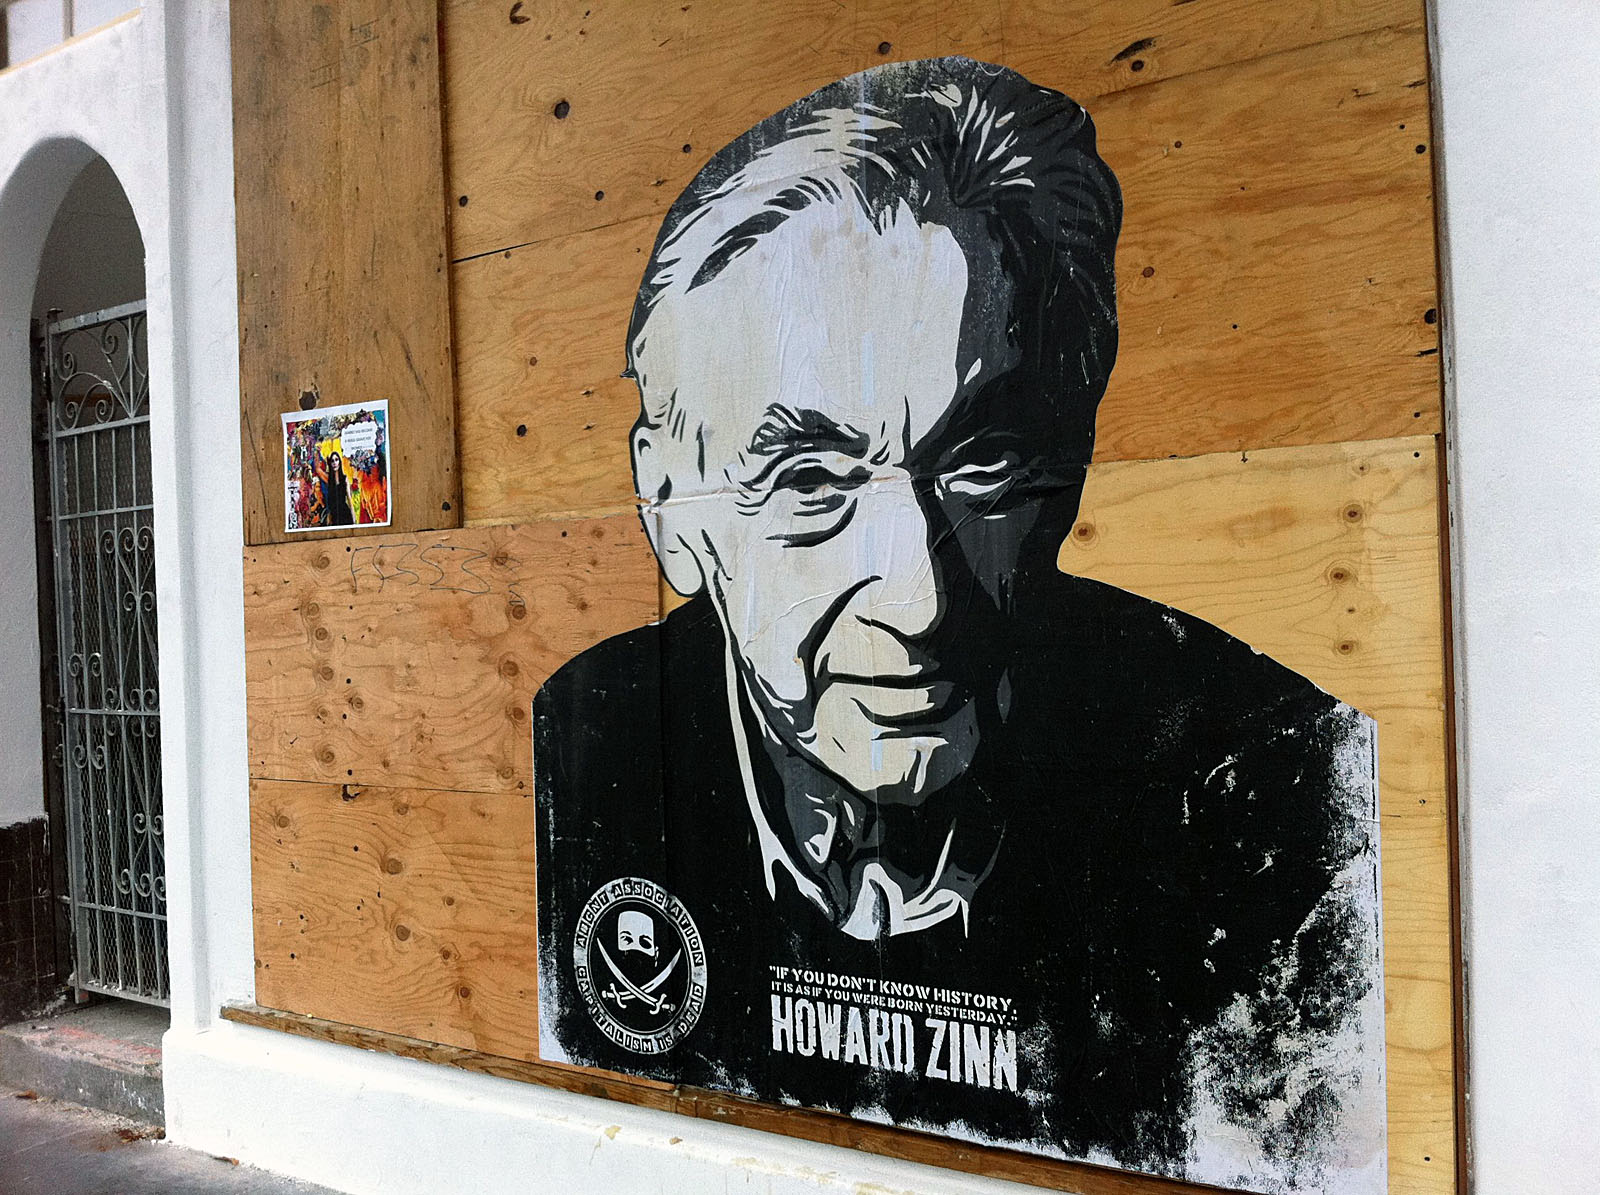 Howard Zinn on Valencia